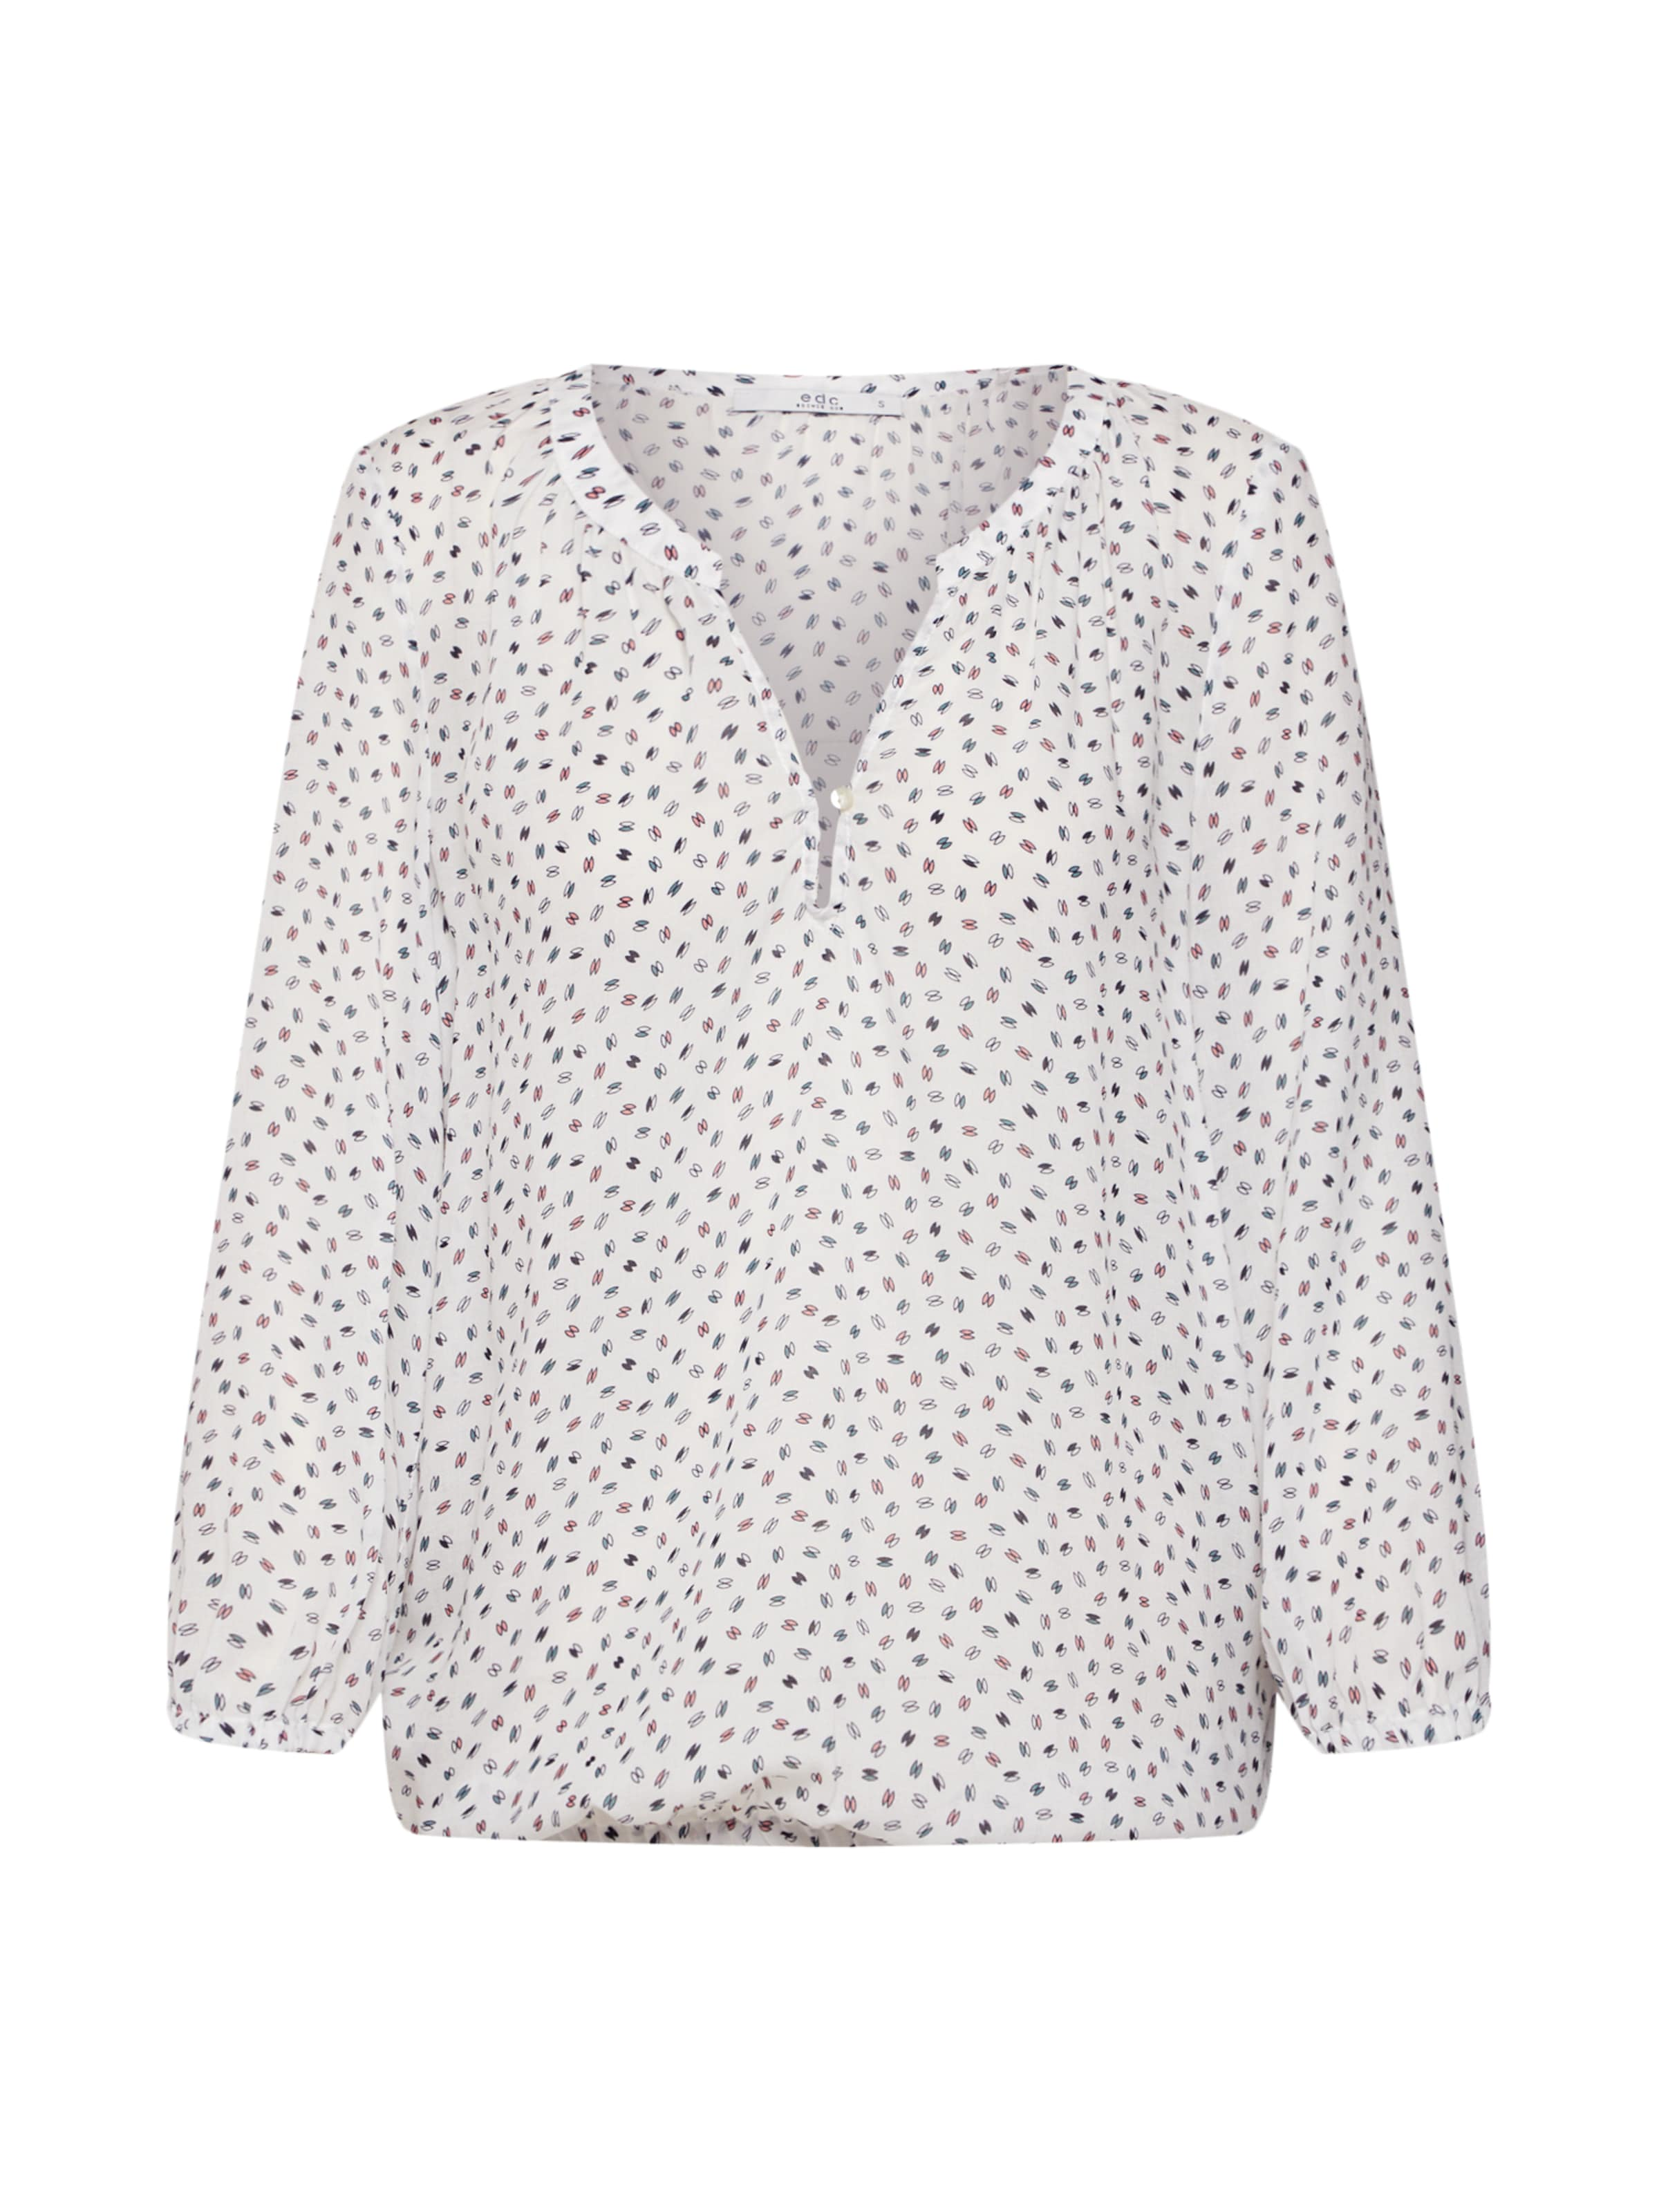 Blouses Offwhite Edc By Esprit In Bluse Woven' 'lightviscosevoi kPZwOXiTu